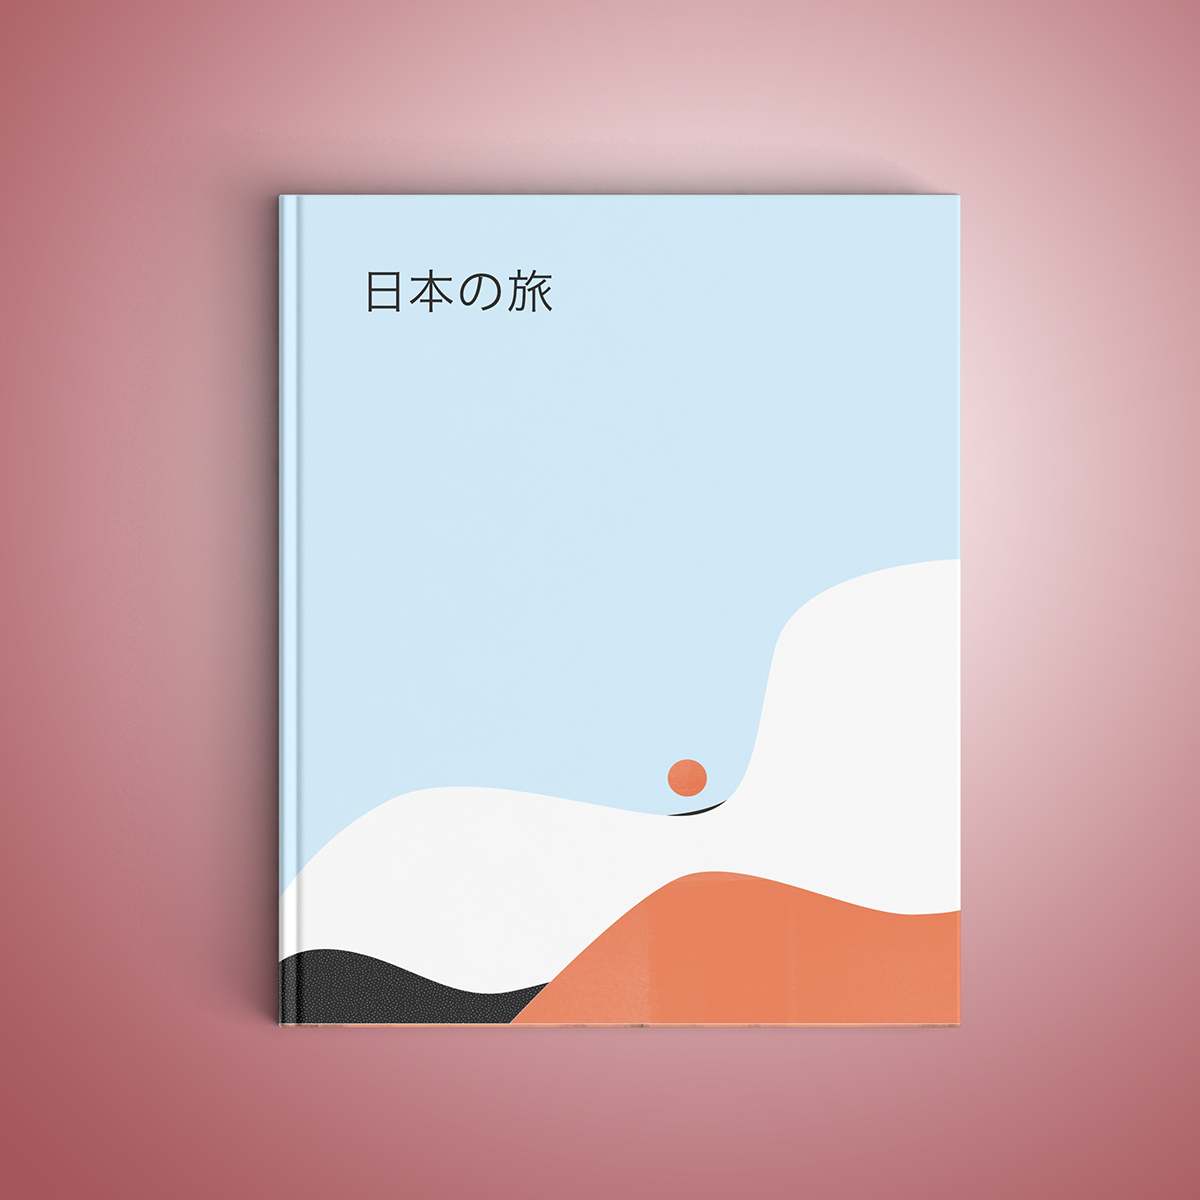 In Love with Japan - Illustrations